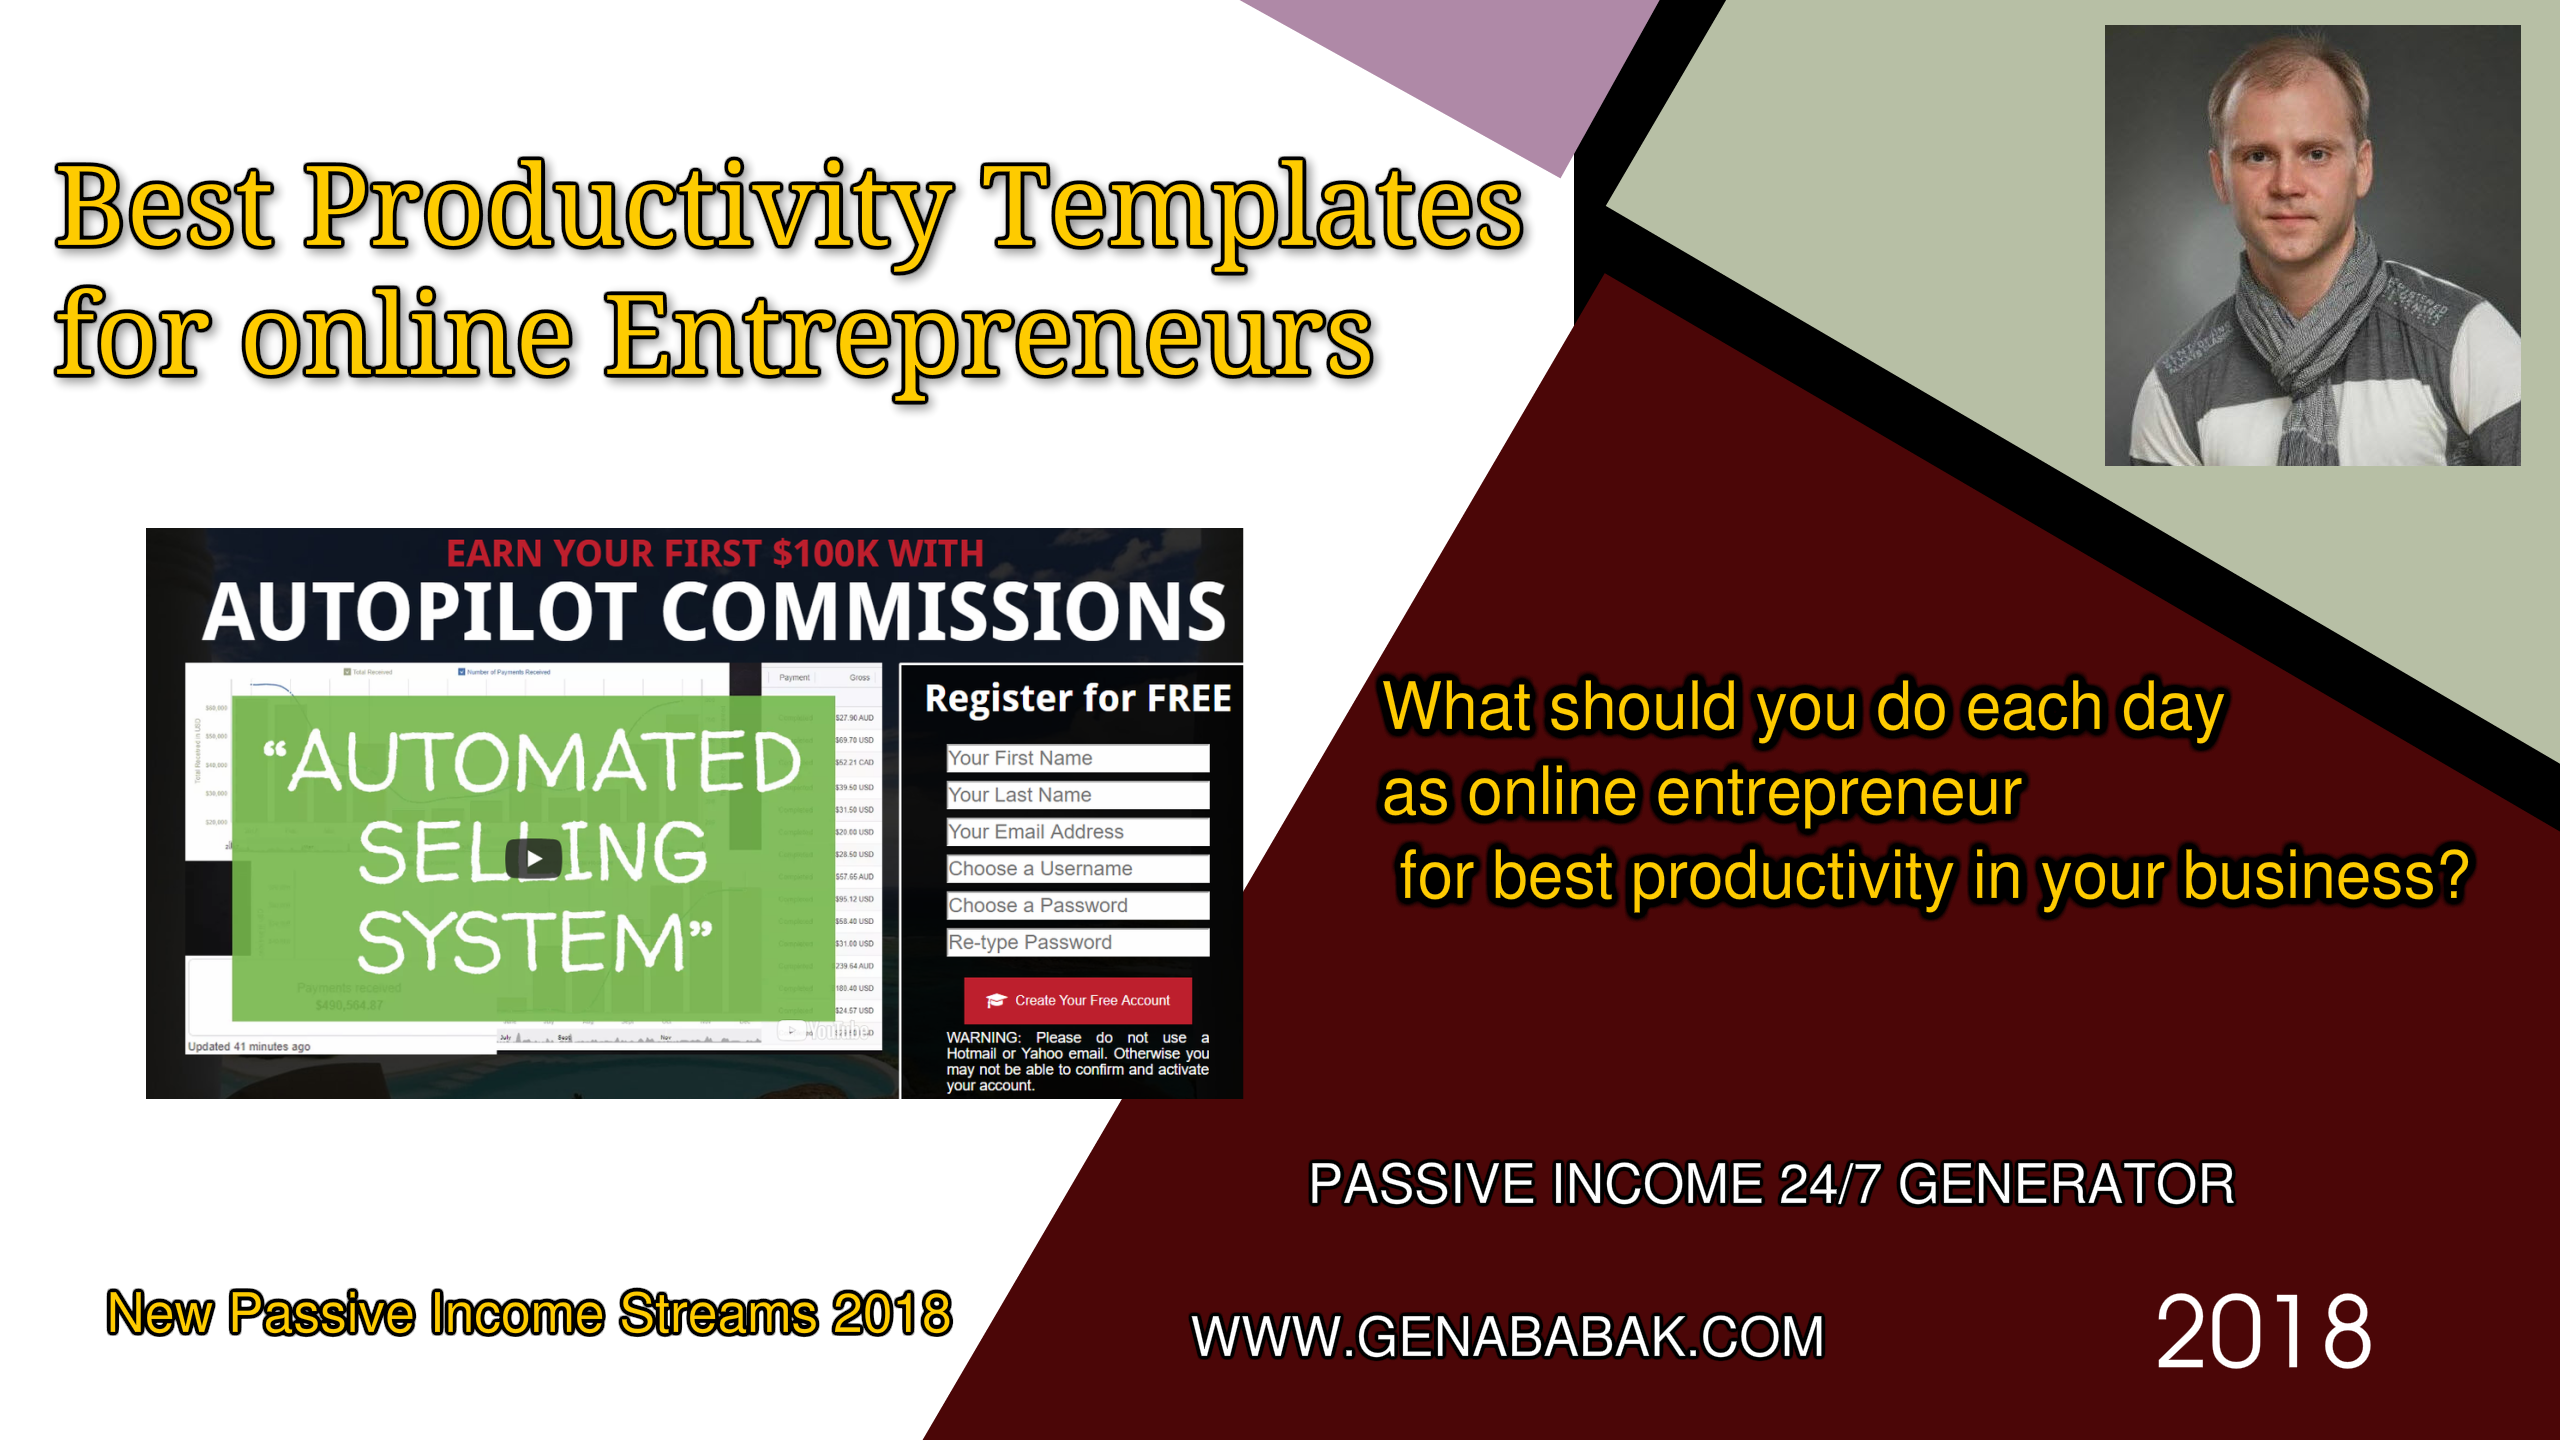 Business Start Ideas - best productivity templates for online entrepreneurs